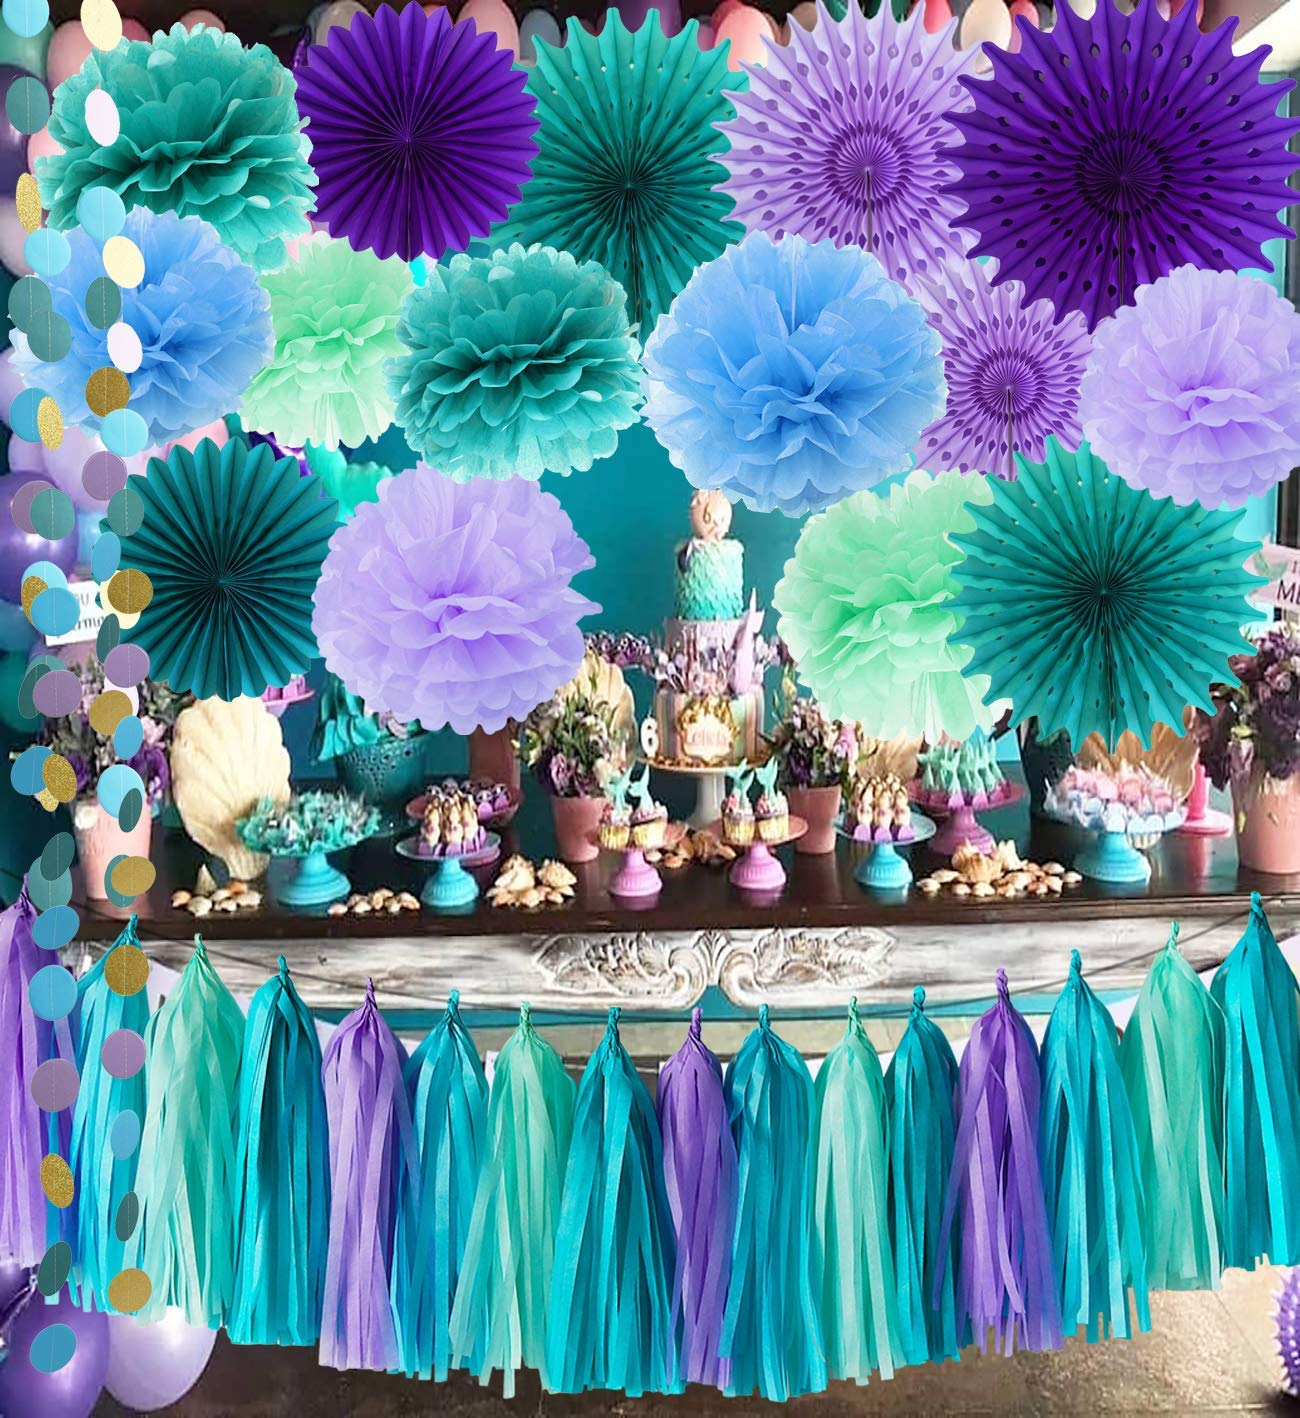 Under The Sea Party Supplies/Mermaid Decorations Teal Purple Blue Mint Tissue Pom Poms Tissue Paper Fans Baby Shower Decorations Purple Mermaid Birthday Party Supplies/Mermaid Bridal Shower Decor